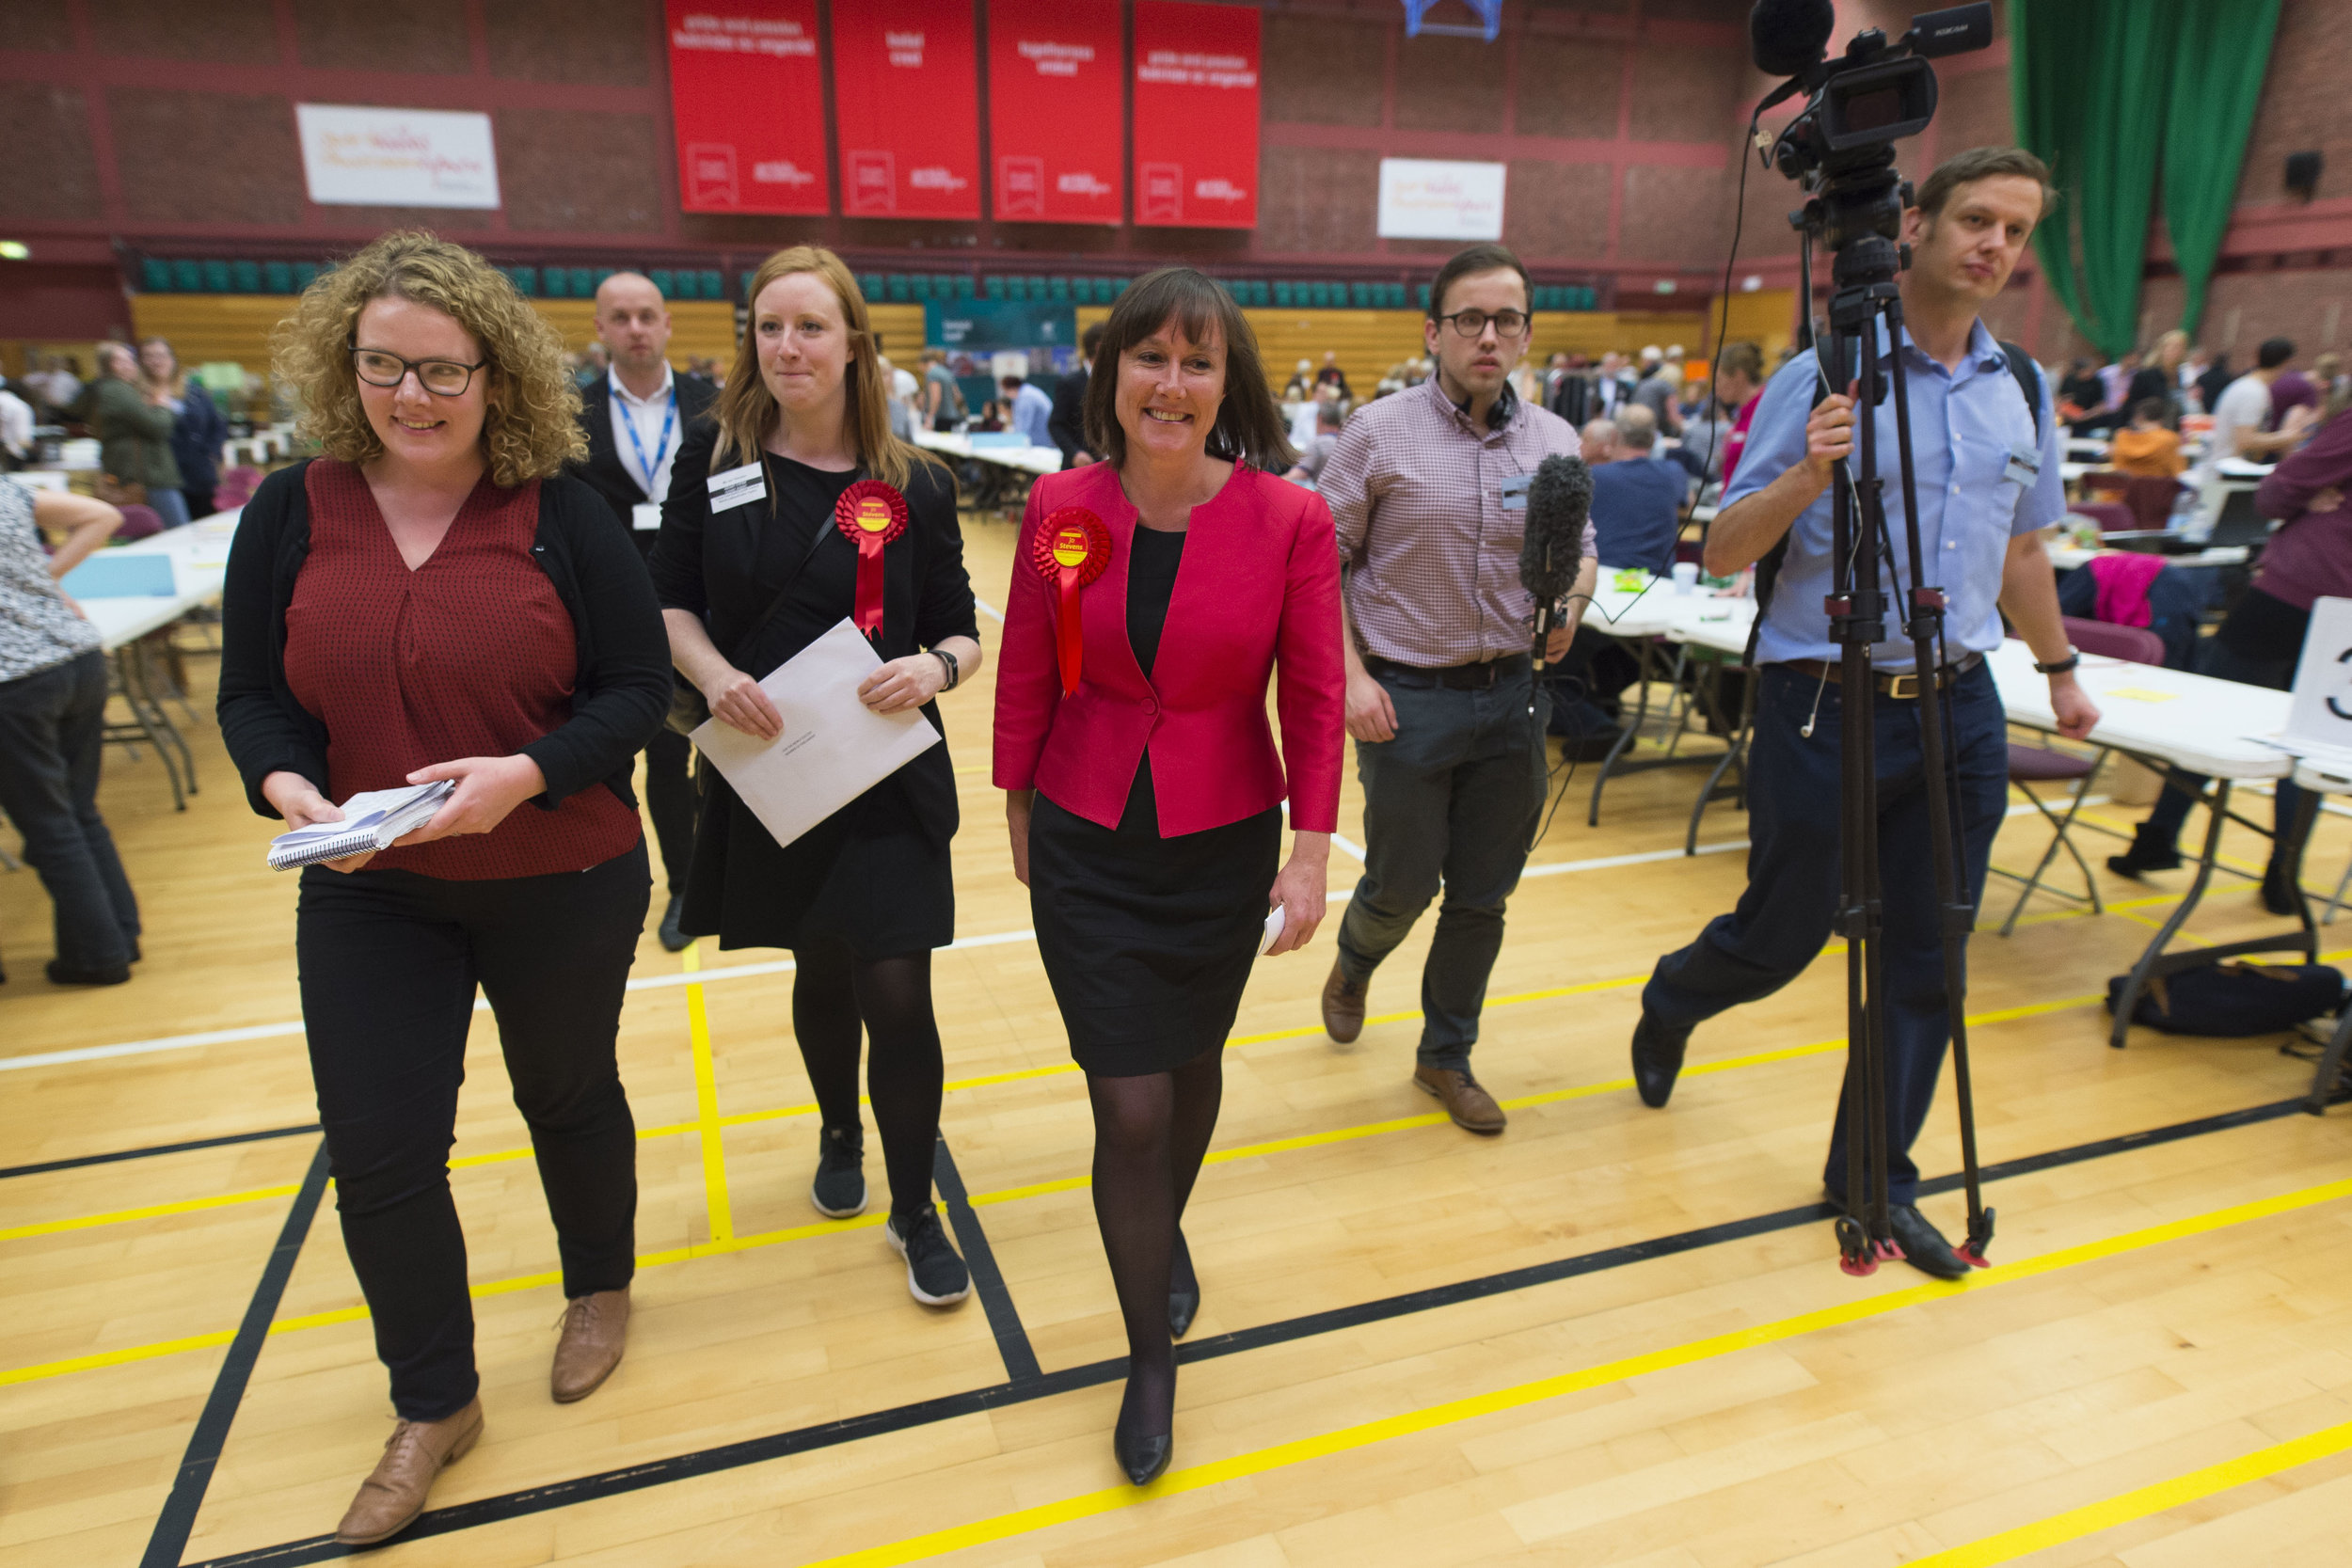 CARDIFF, UNITED KINGDOM - JUNE 09: Jo Stevens (centre) wins Cardiff Central for Labour increasing her majority to more than 17,000 at the Sport Wales National Centre on June 9, 2017 in Cardiff, United Kingdom. After a snap election was called, the United Kingdom went to the polls yesterday following a closely fought election. The results from across the country are being counted and an overall result is expected in the early hours. (Photo by Matthew Horwood/Getty Images)